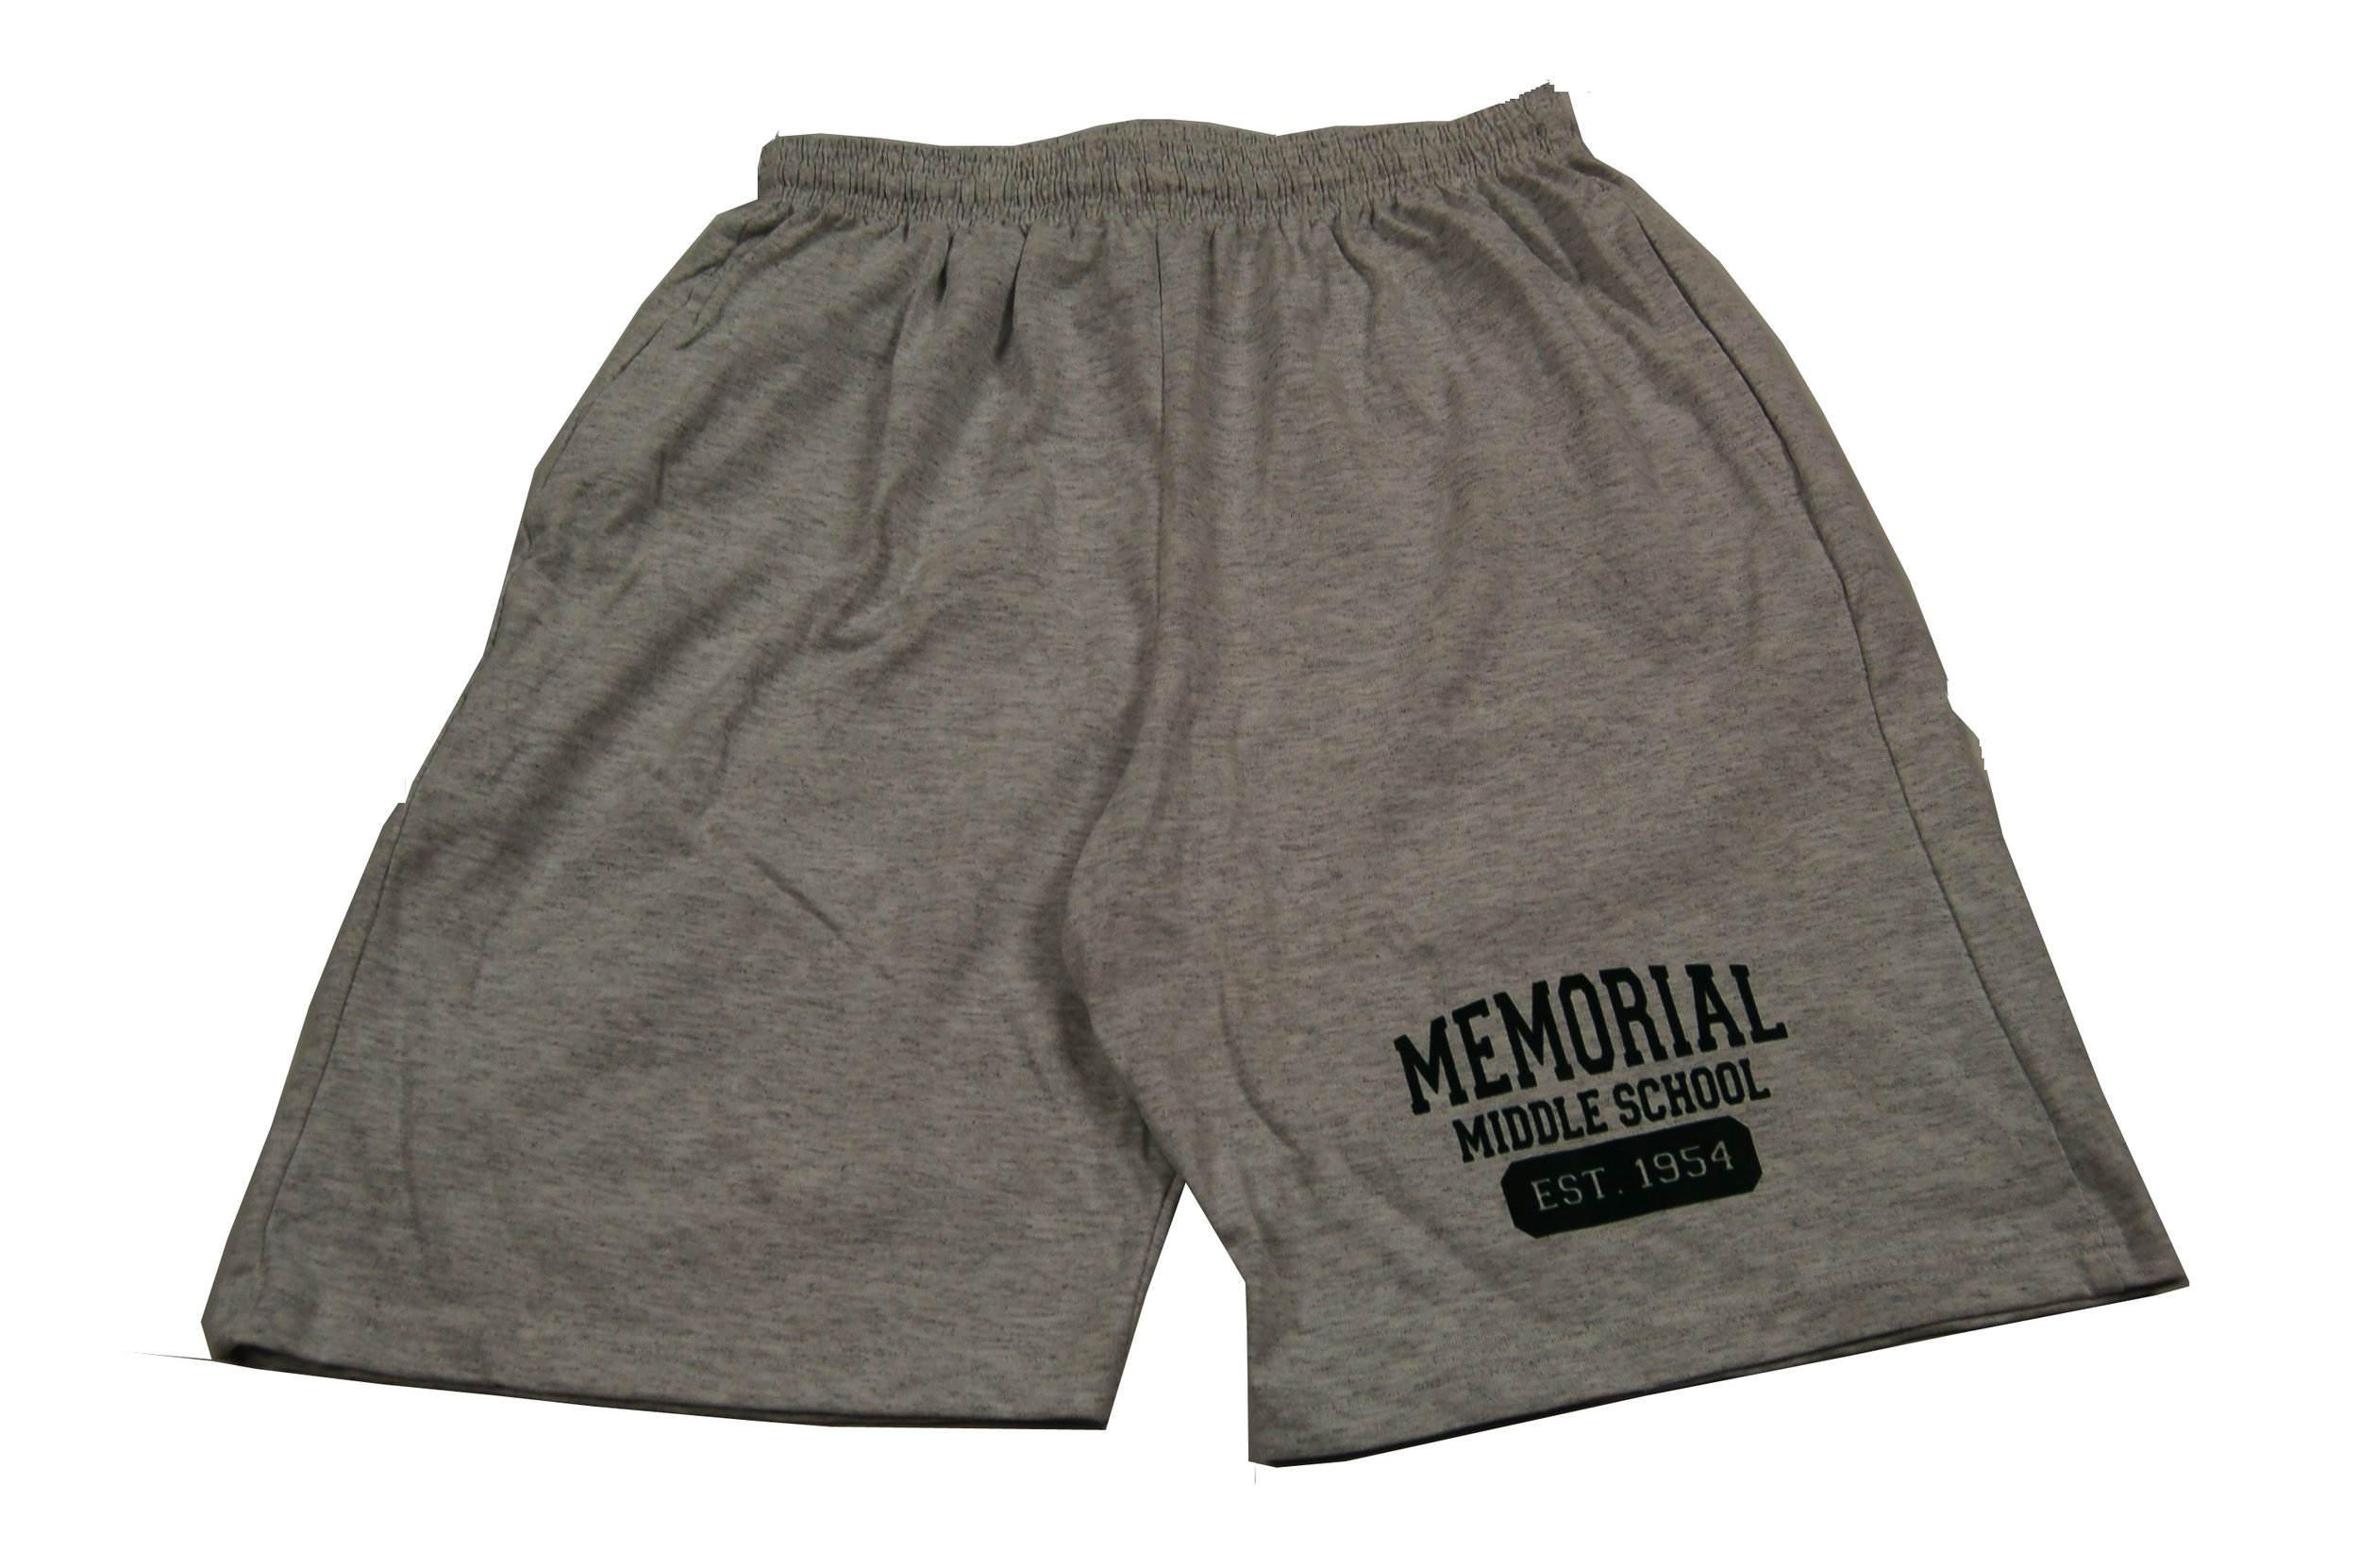 Memorial Middle School shorts.